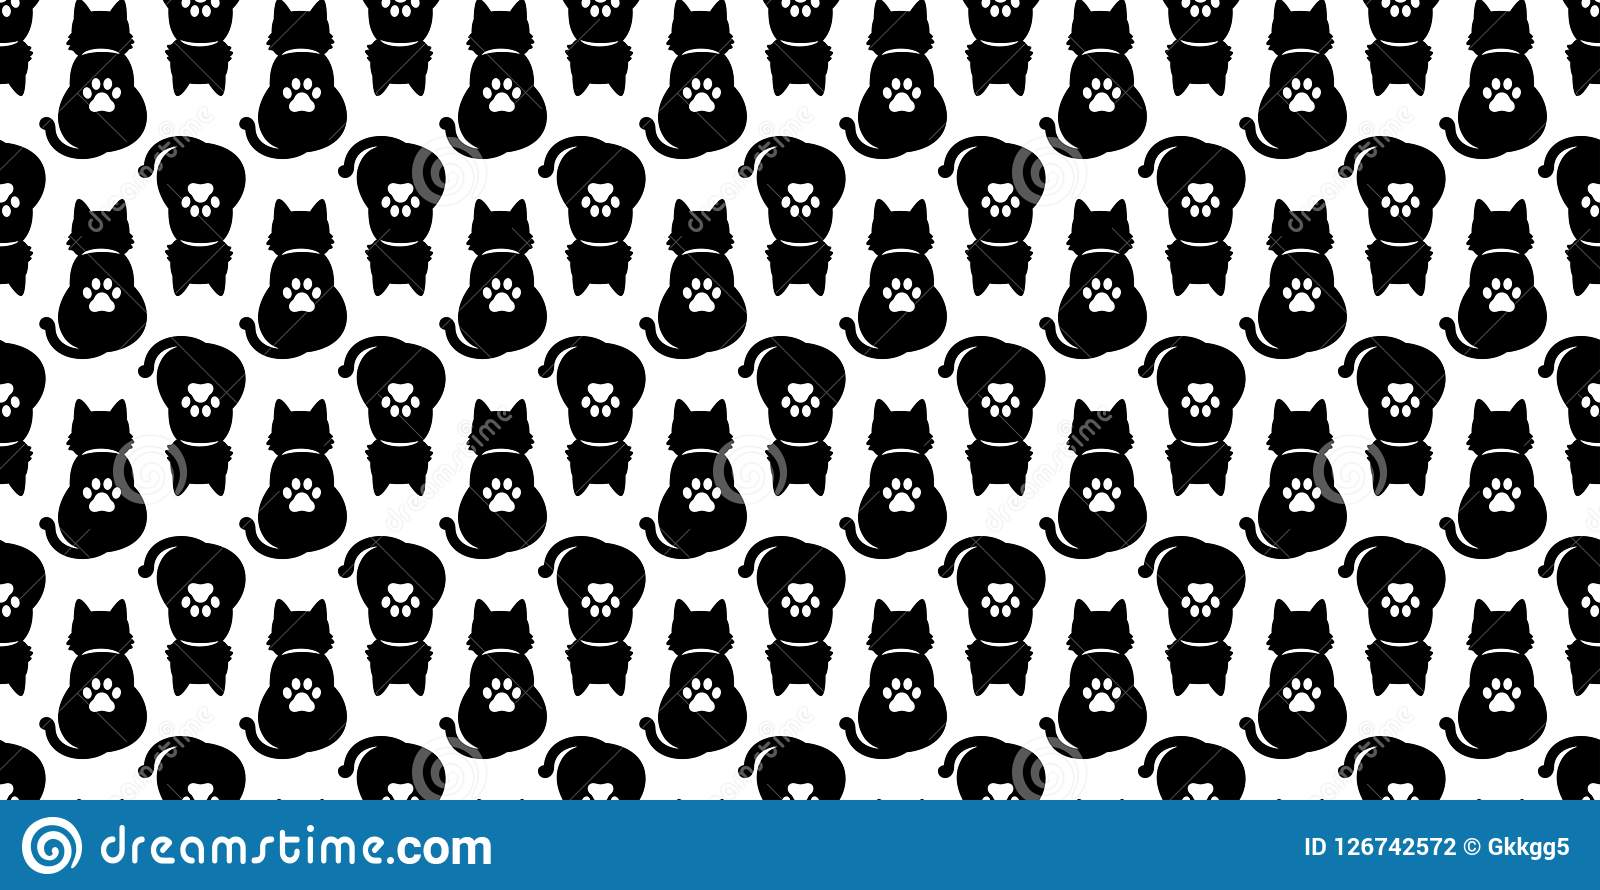 Cat Seamless Pattern Vector Paw Halloween Kitten Calico Cartoon Il Ration Tile Background Repeat Wallpaper Scarf Isolated